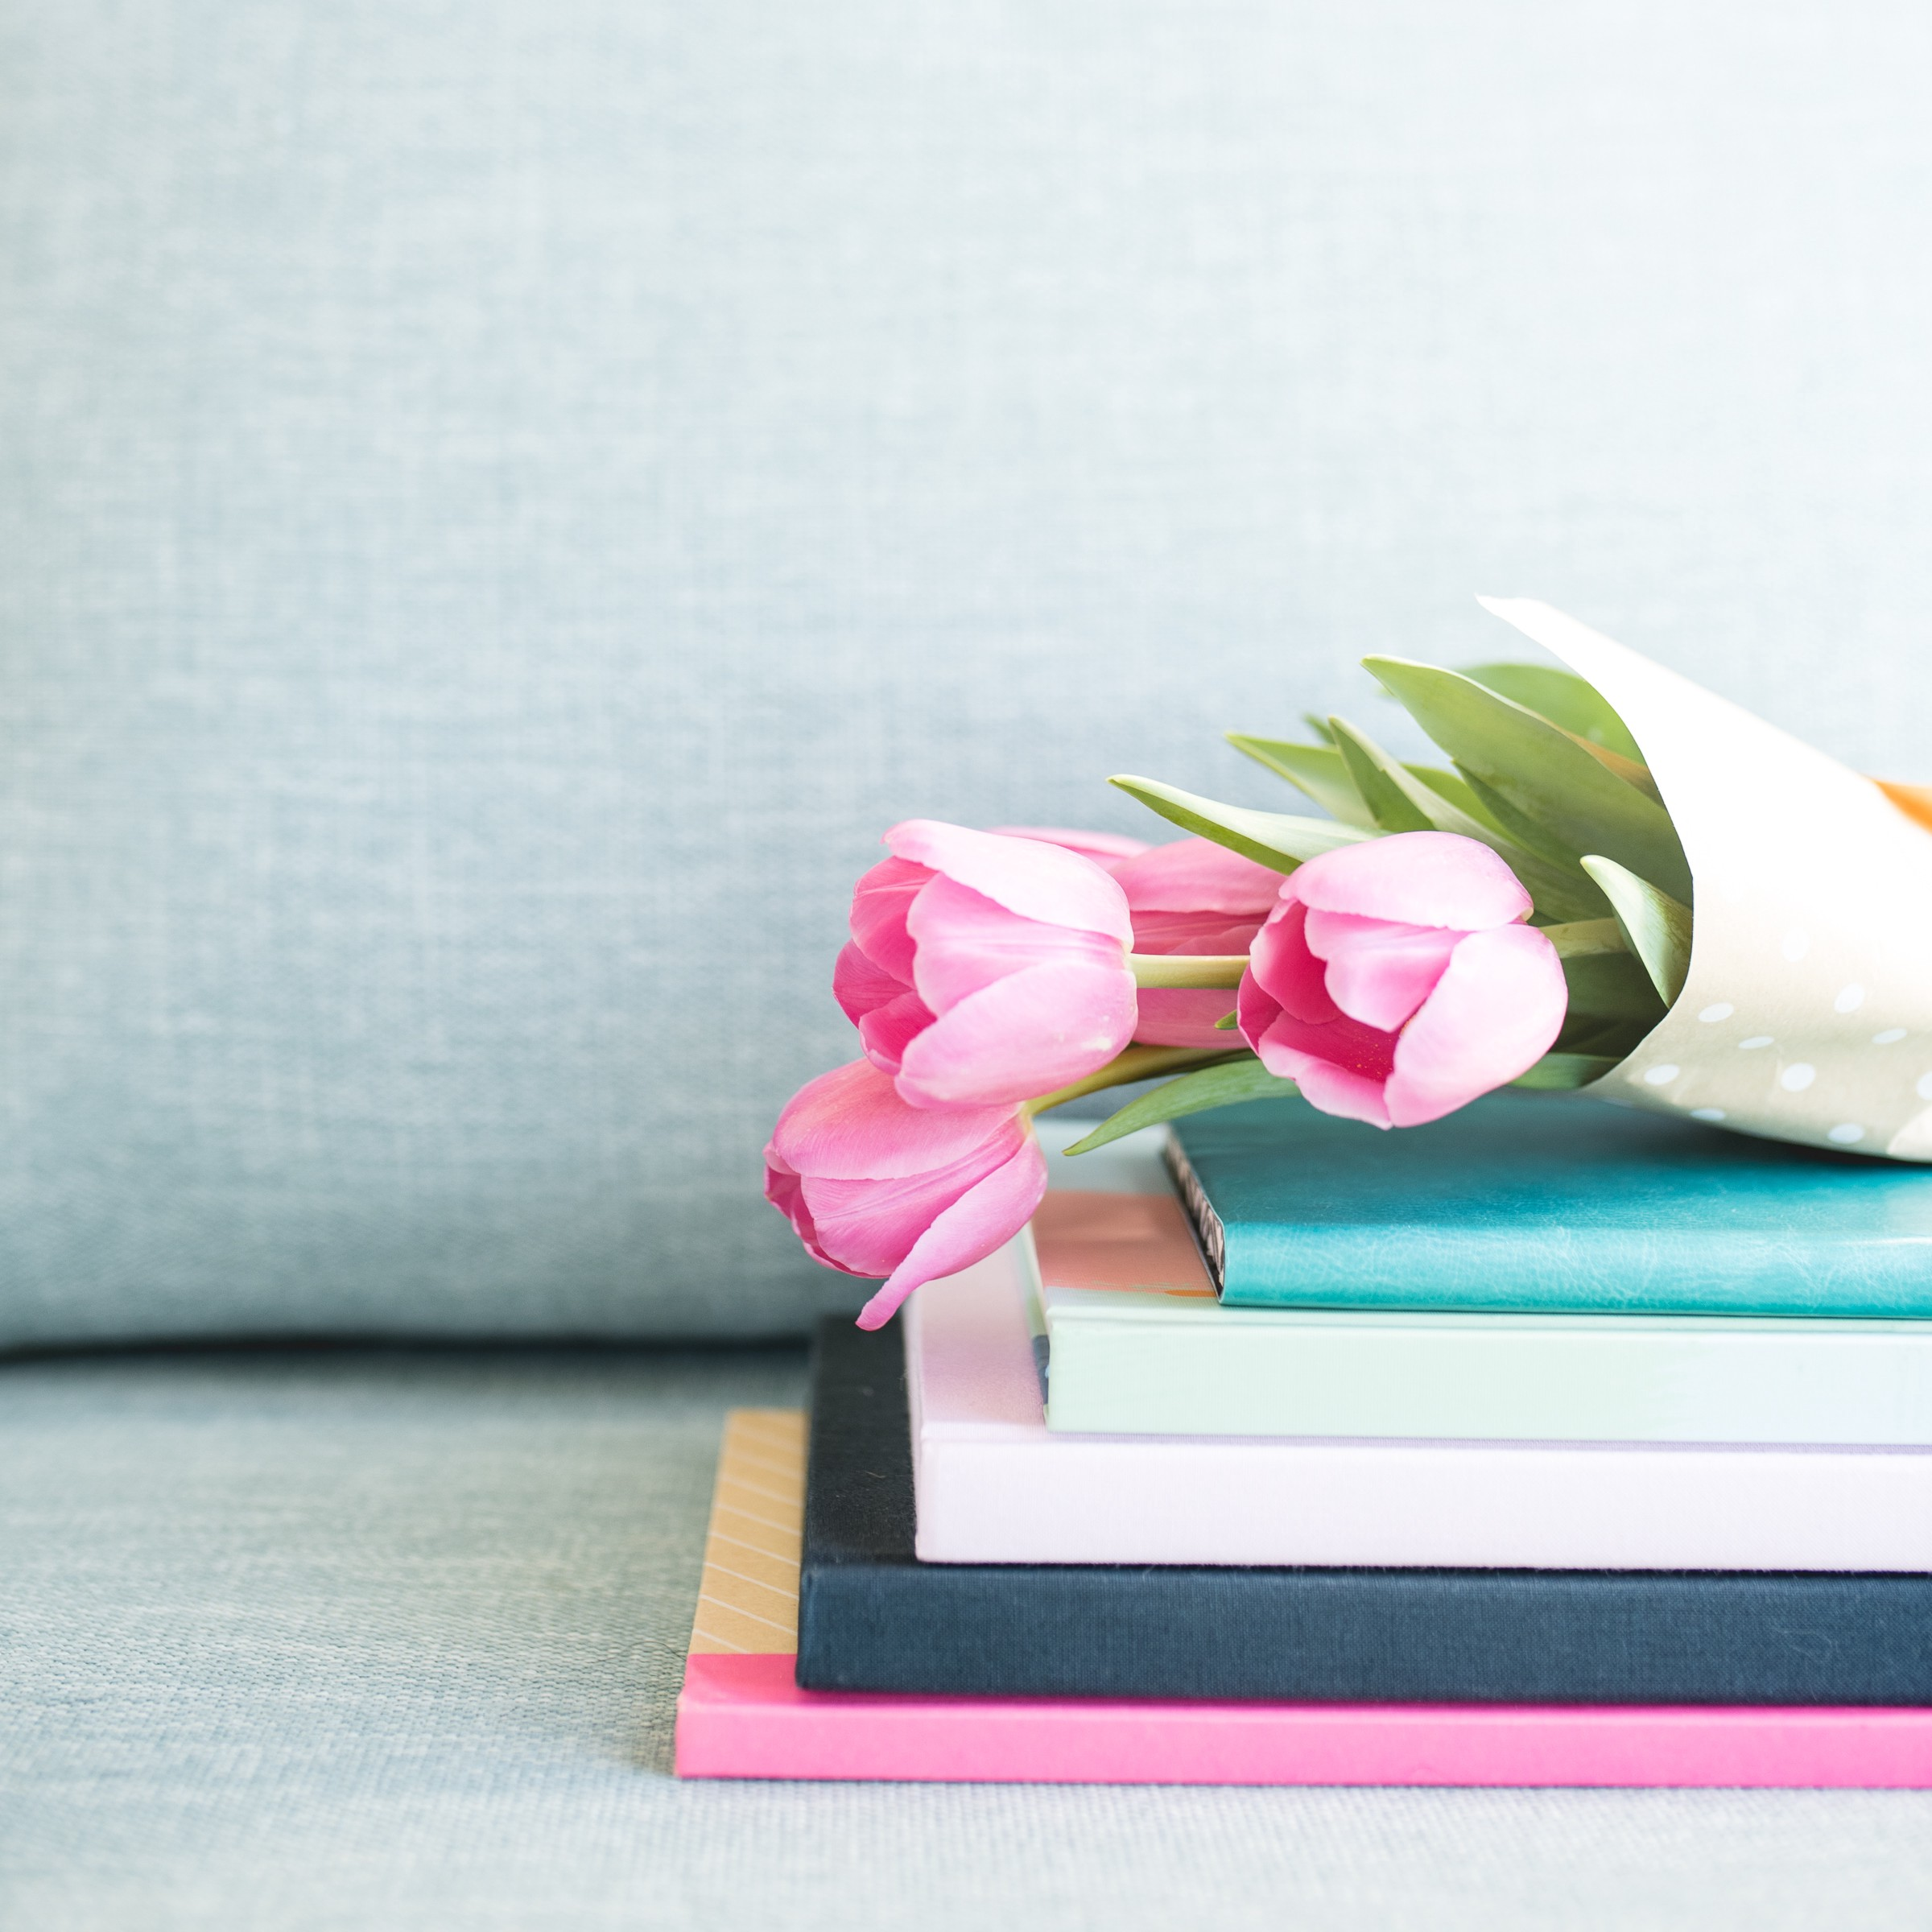 Light pink tulips wrapped in white paper and placed over a short stack of pastel colored bound-edged notebooks